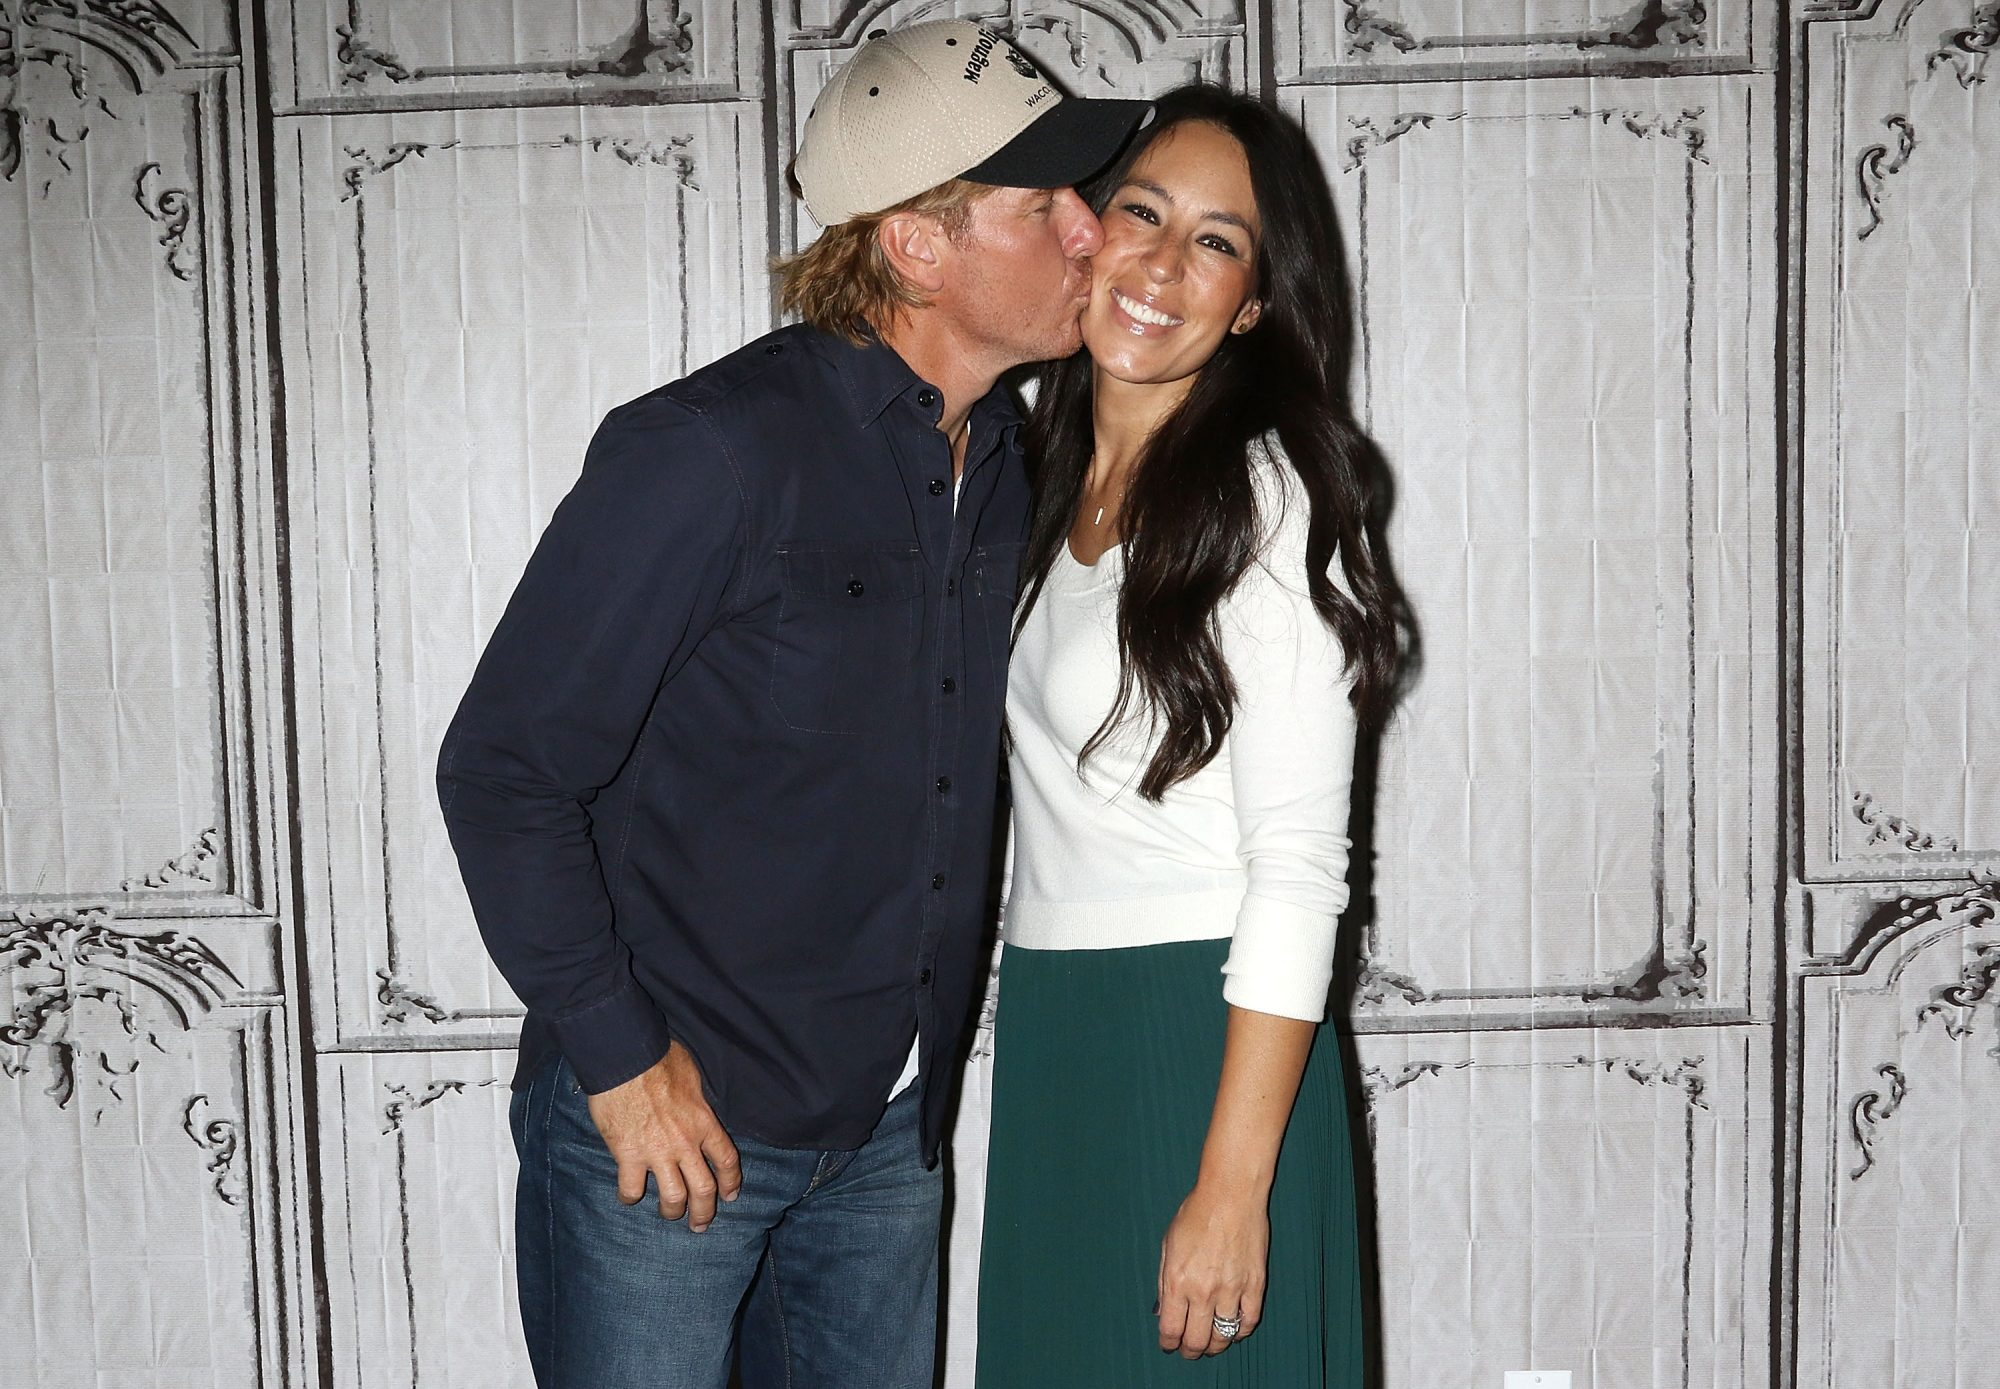 getty-chip-and-joanna-gaines-image